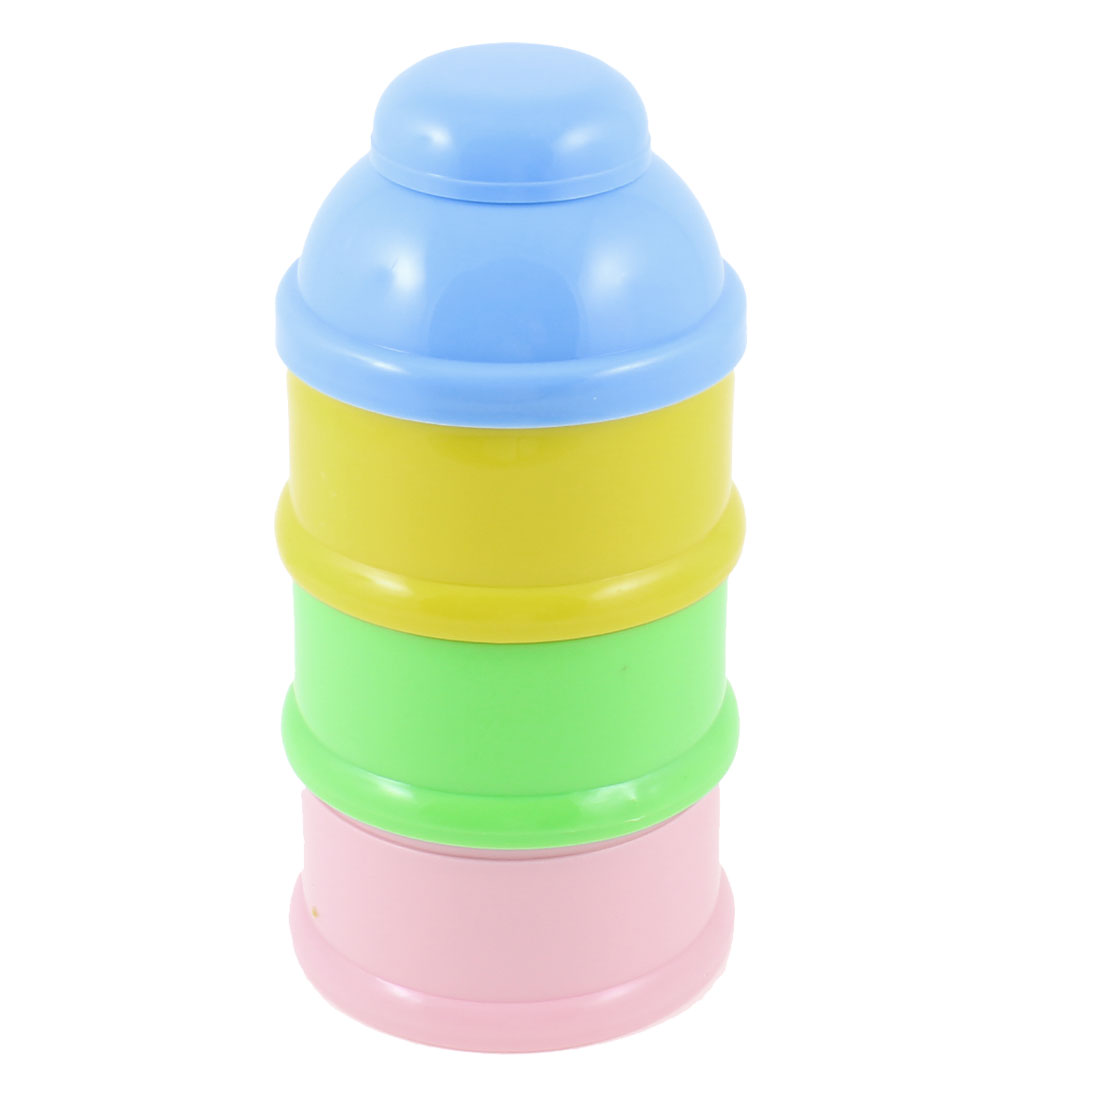 Blue Cover 3 Layers Bottle Shaped Baby Milk Powder Formula Container Case